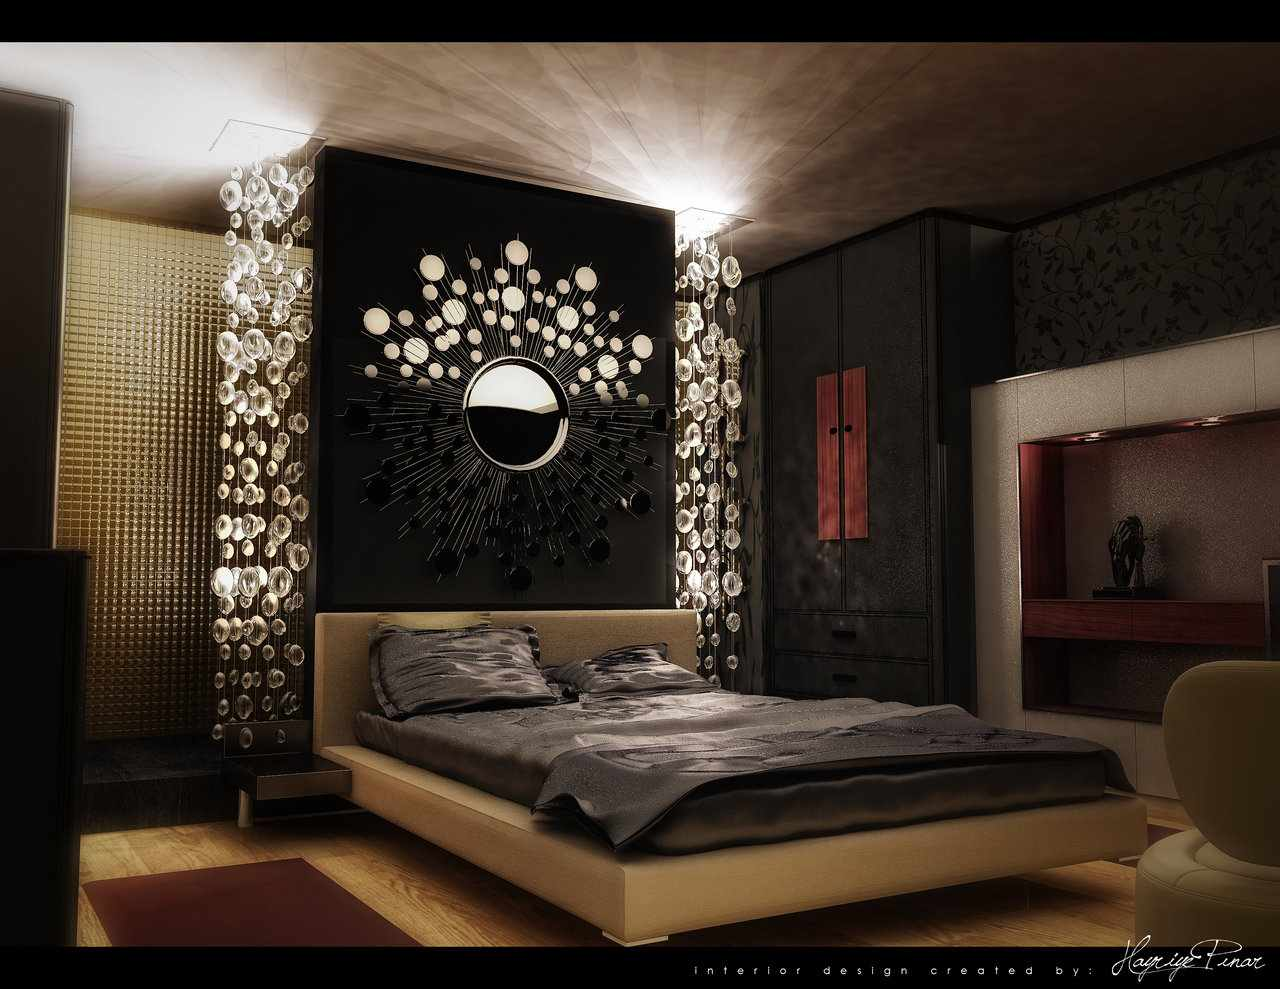 Ikea bedroom ideas ikea bedroom 2014 ideas exotic Bedroom design lighting